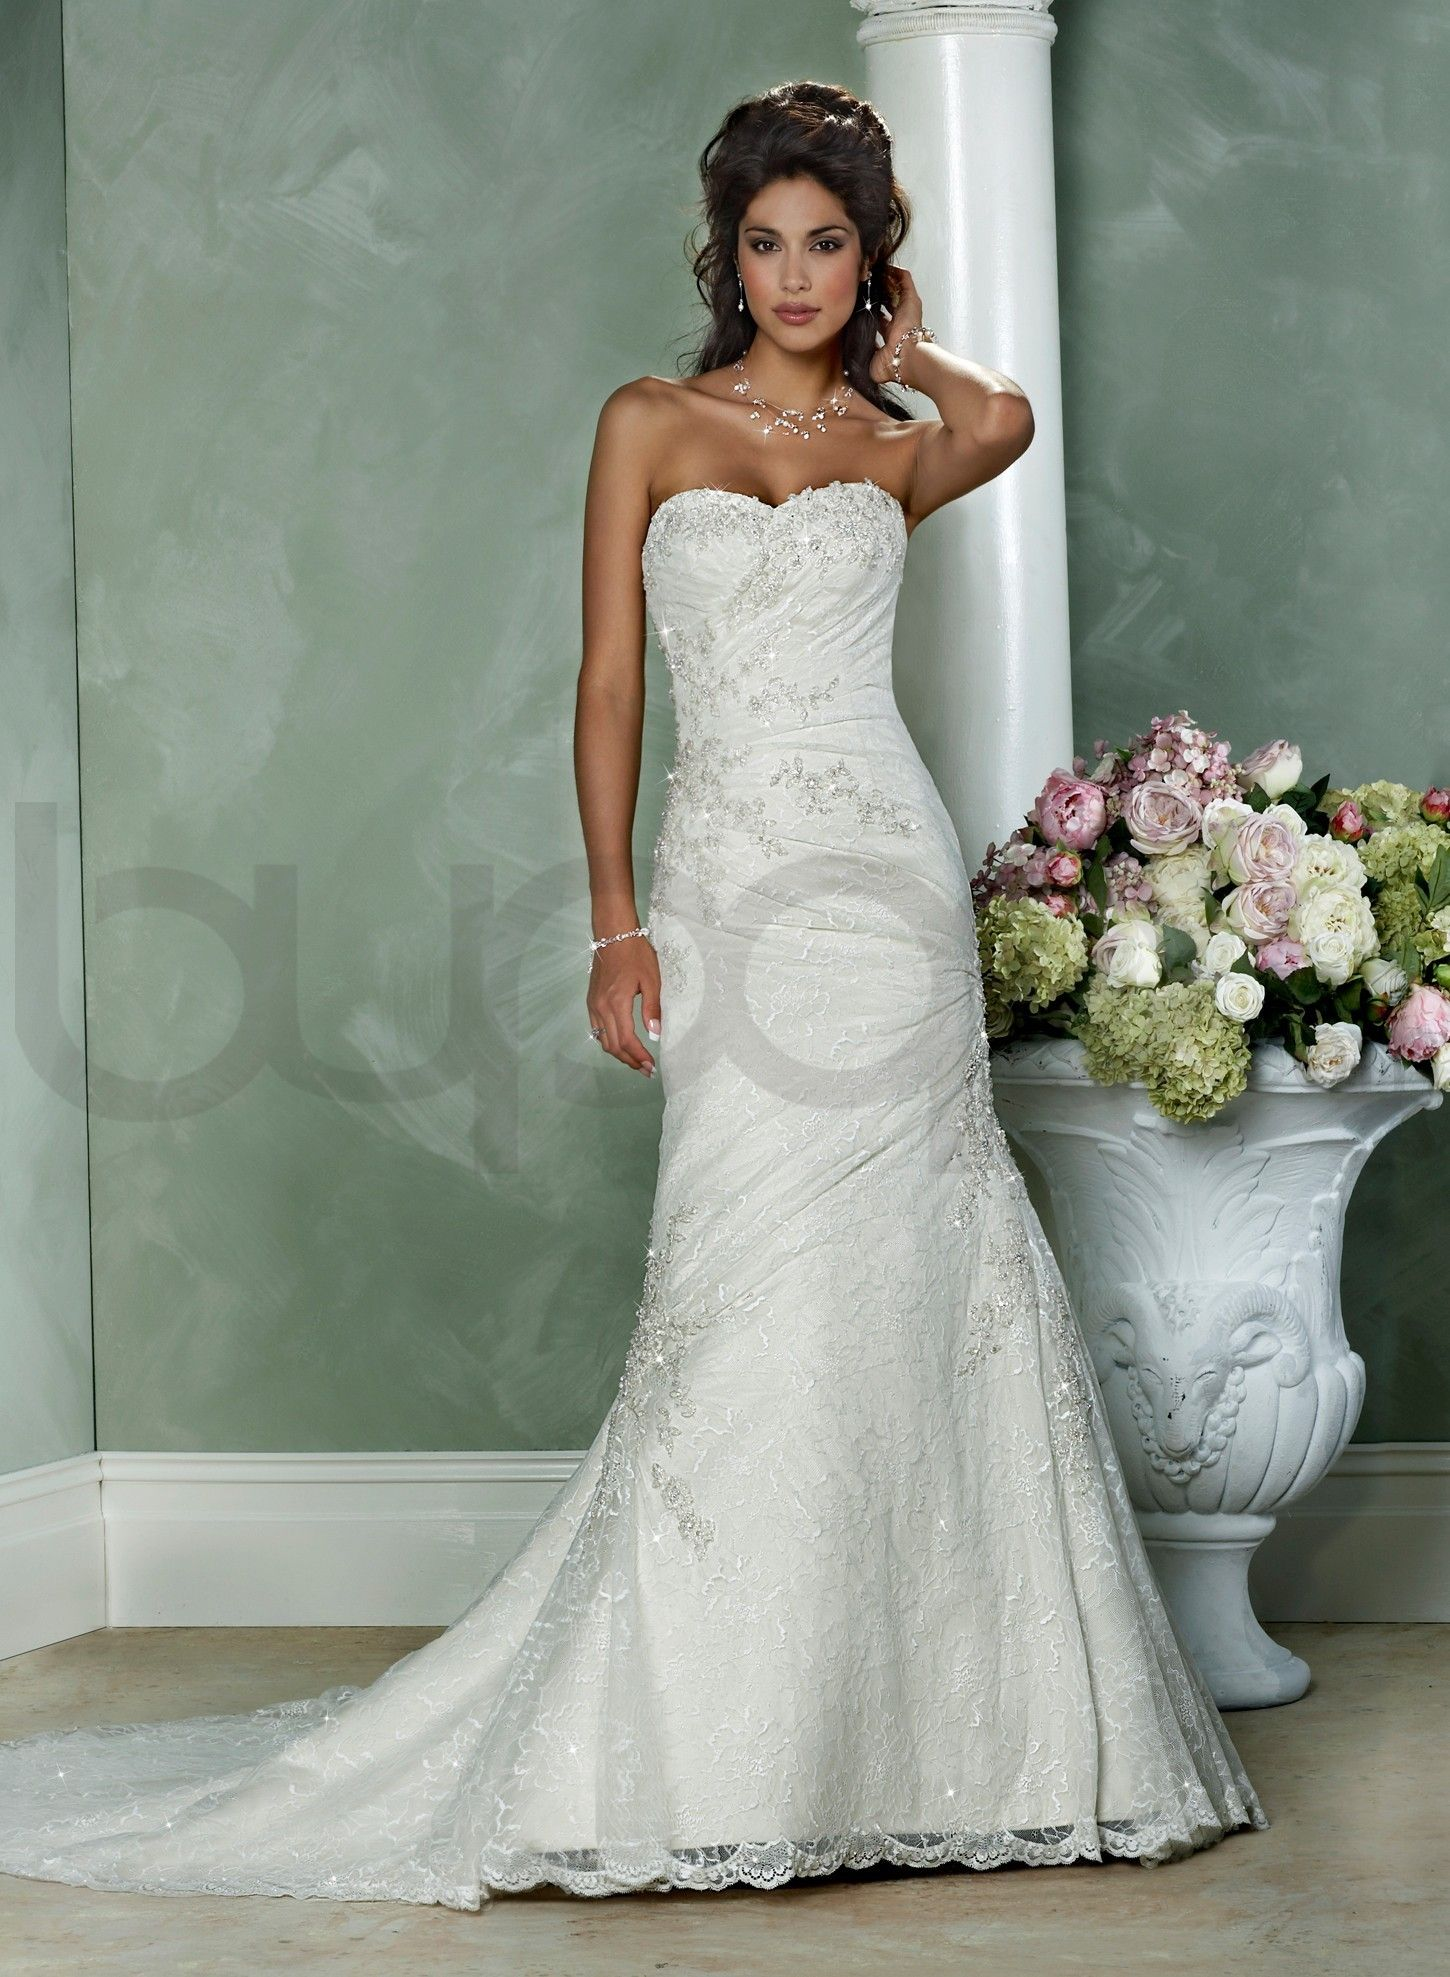 Collection Sweetheart Neck Wedding Dresses Pictures - Wedding ring ...